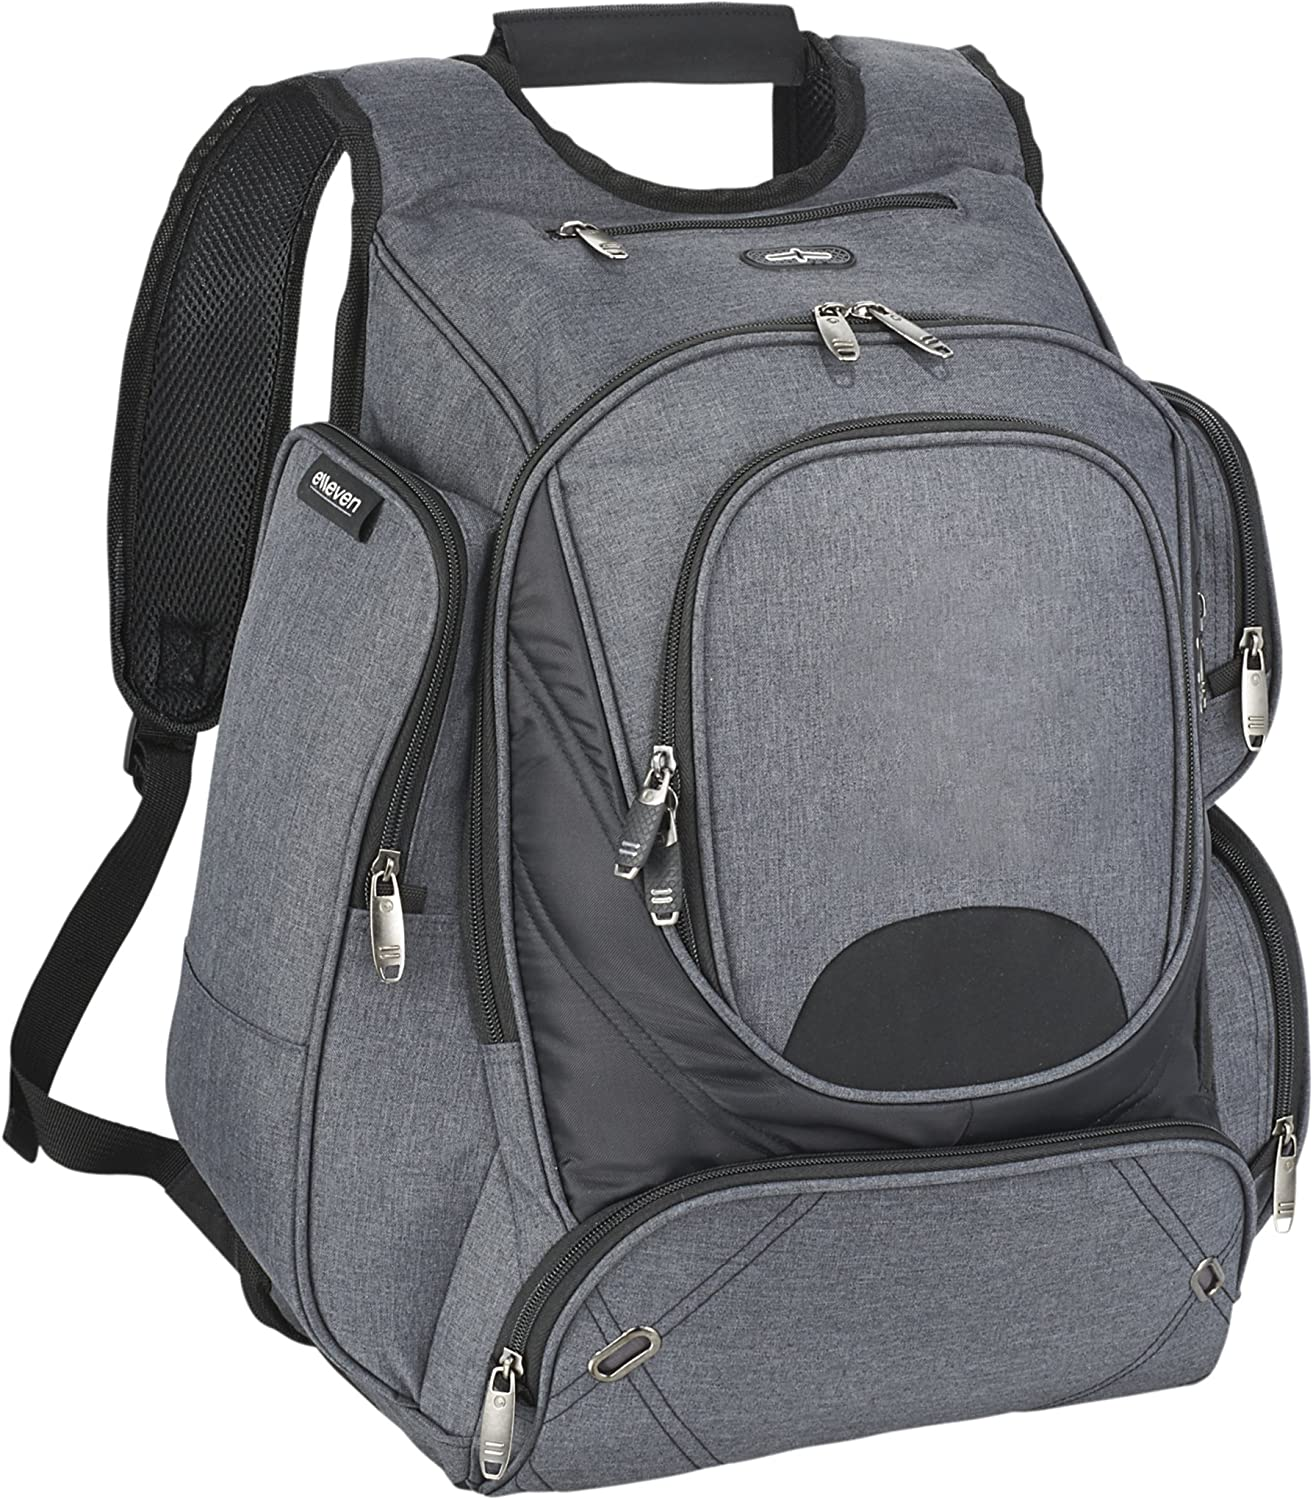 Elleven Proton Checkpoint Friendly 17in Computer Backpack (16.3 x 8.9 x 18.7 inches) (Gray)